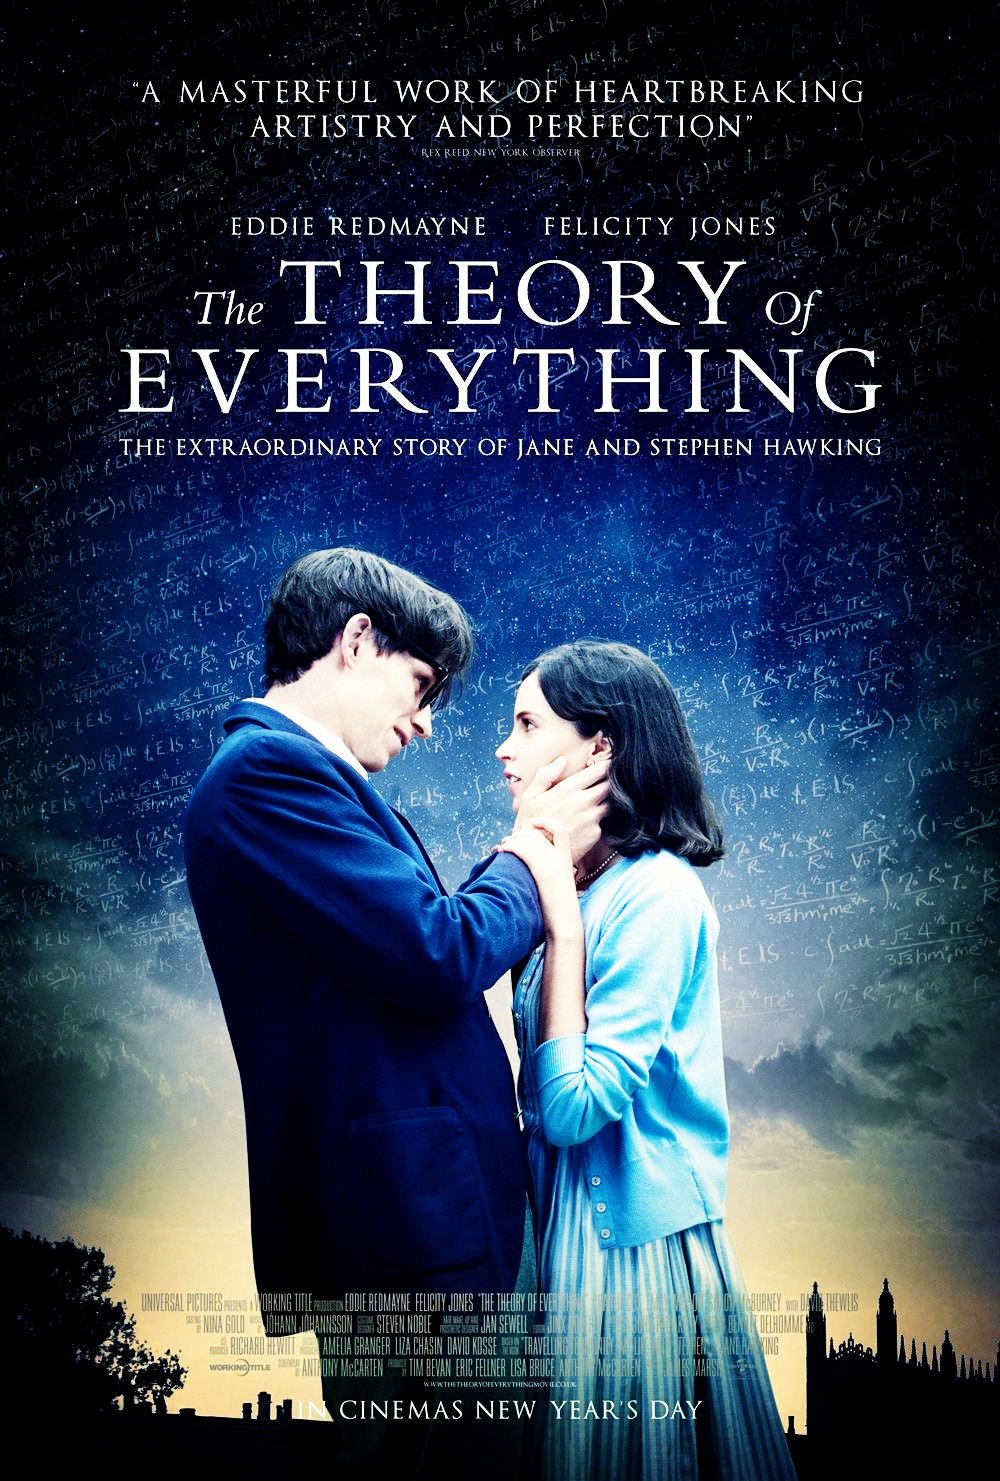 Sinopsis Film The Theory of Everything (Felicity Jones, Eddie Redmayne)